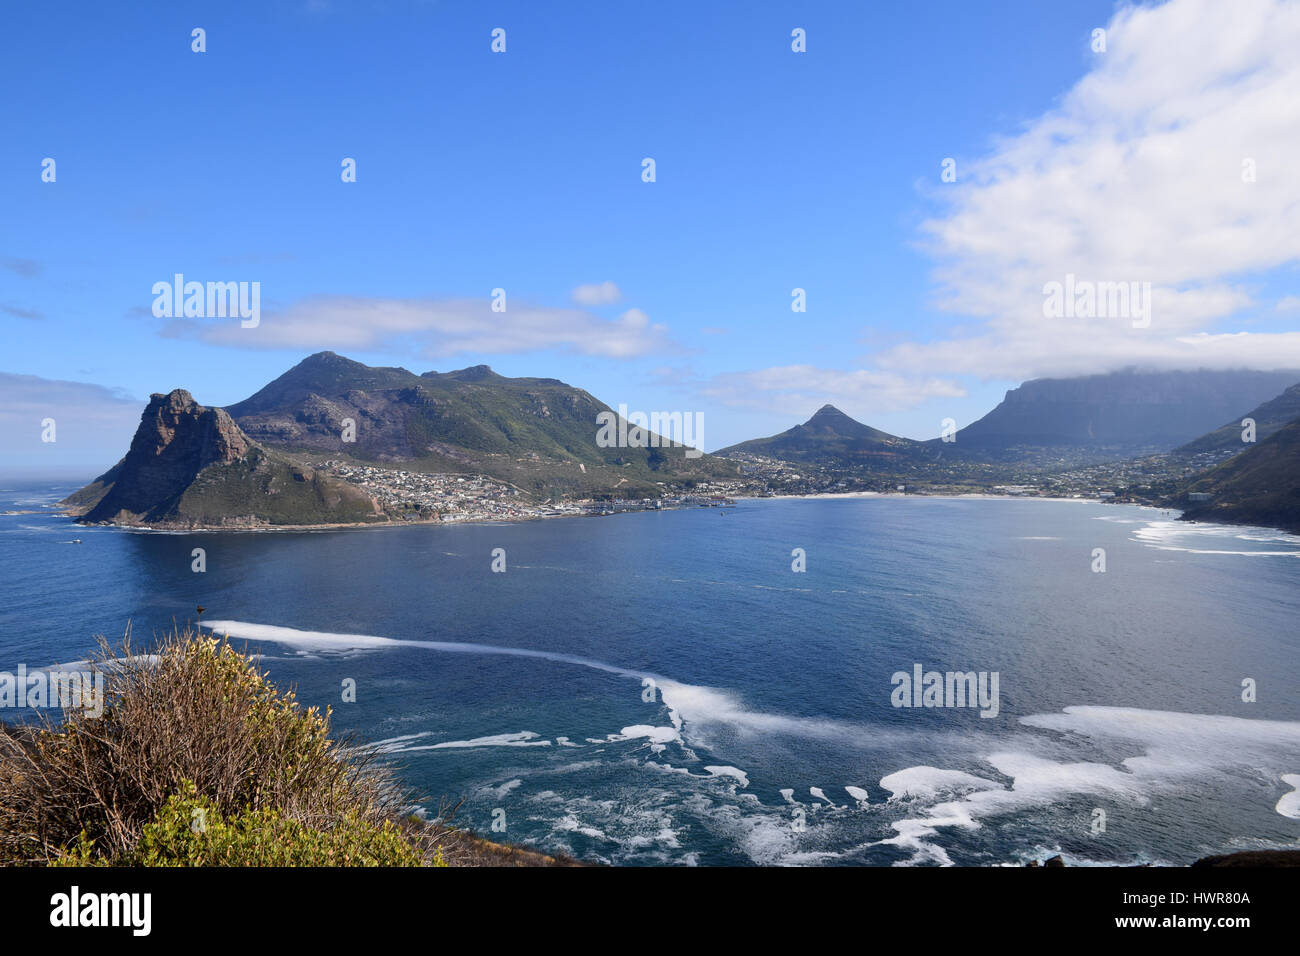 Hout Bay, Western Cape, South Africa - Stock Image